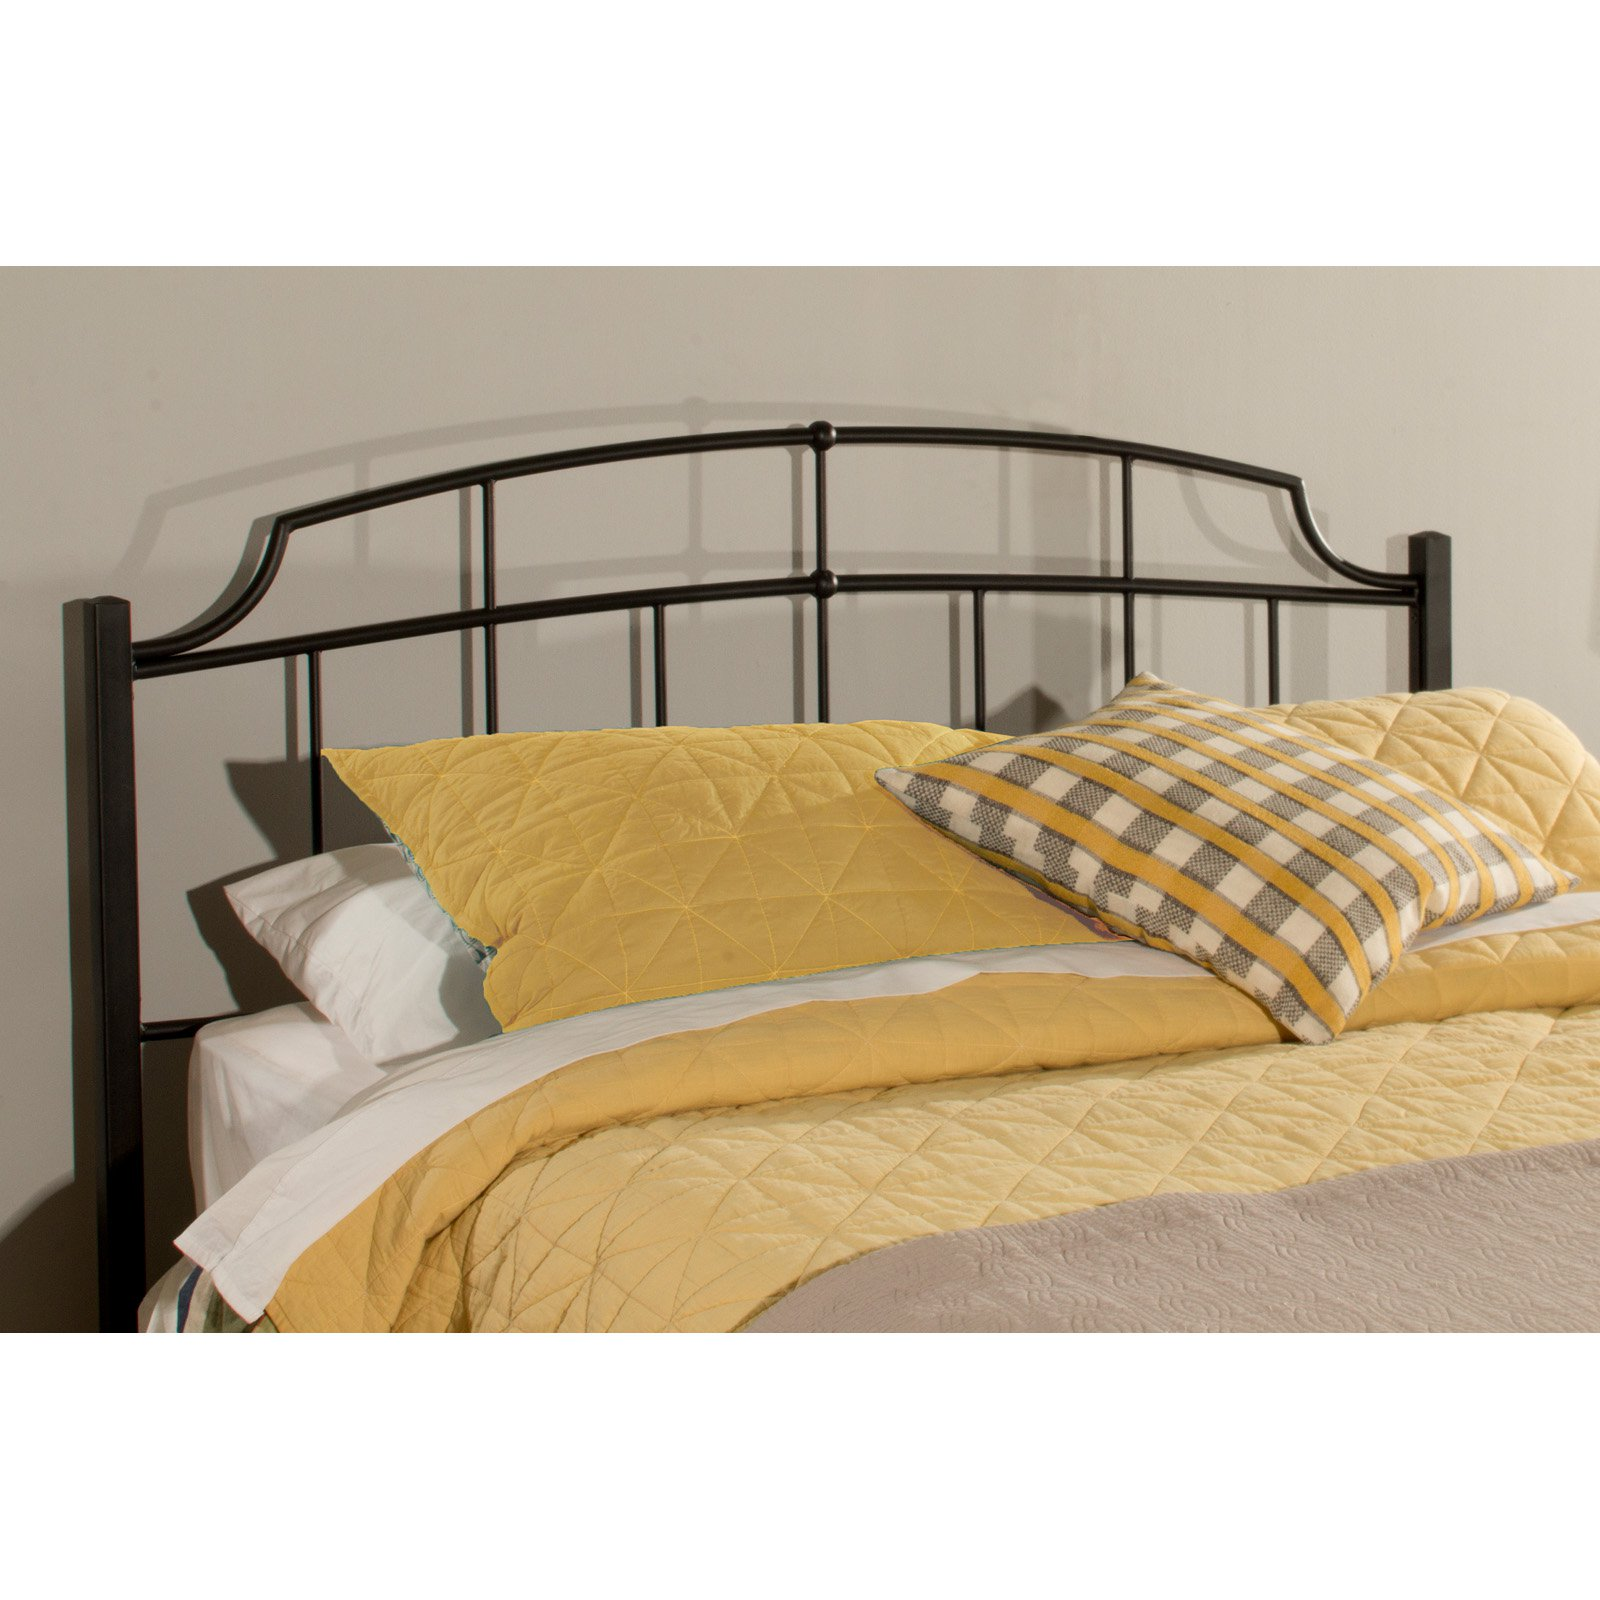 Hillsdale Furniture Sheffield Headboard, Multiple Sizes